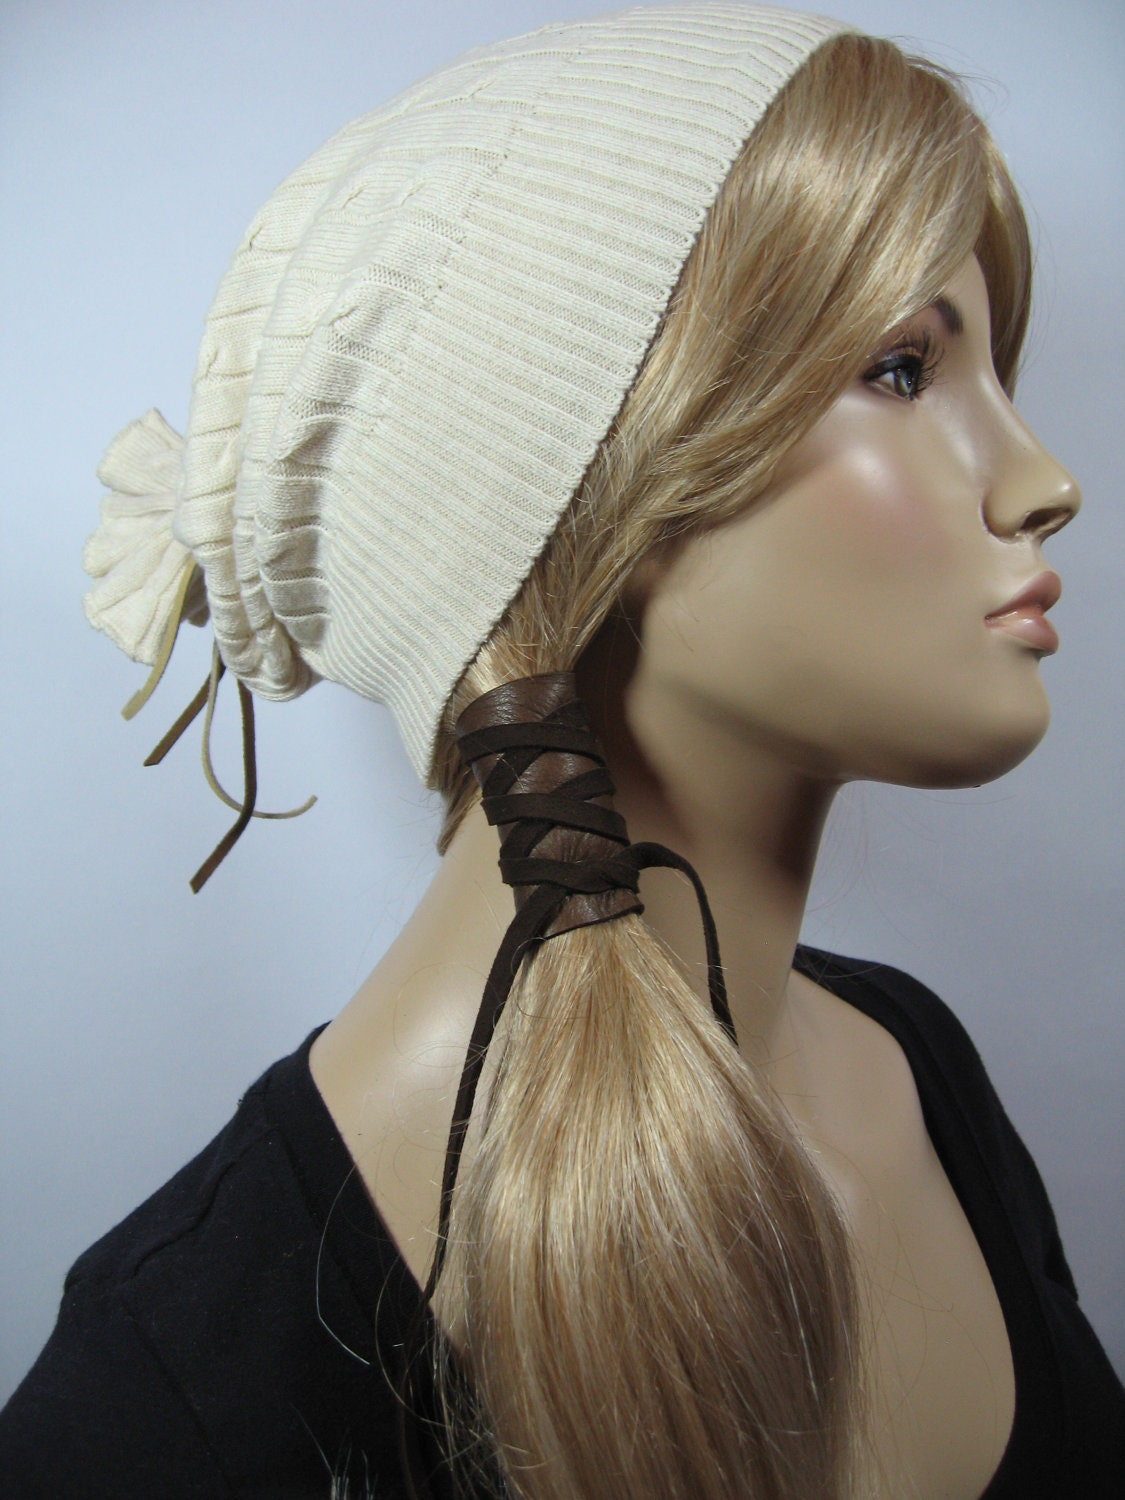 Hot Head Rope Elastic Rubber Hairband Headband Tie Ponytail Hair Accessories. Headband only, any other accessories not included. It is a good gift for your lover, family and your friend.